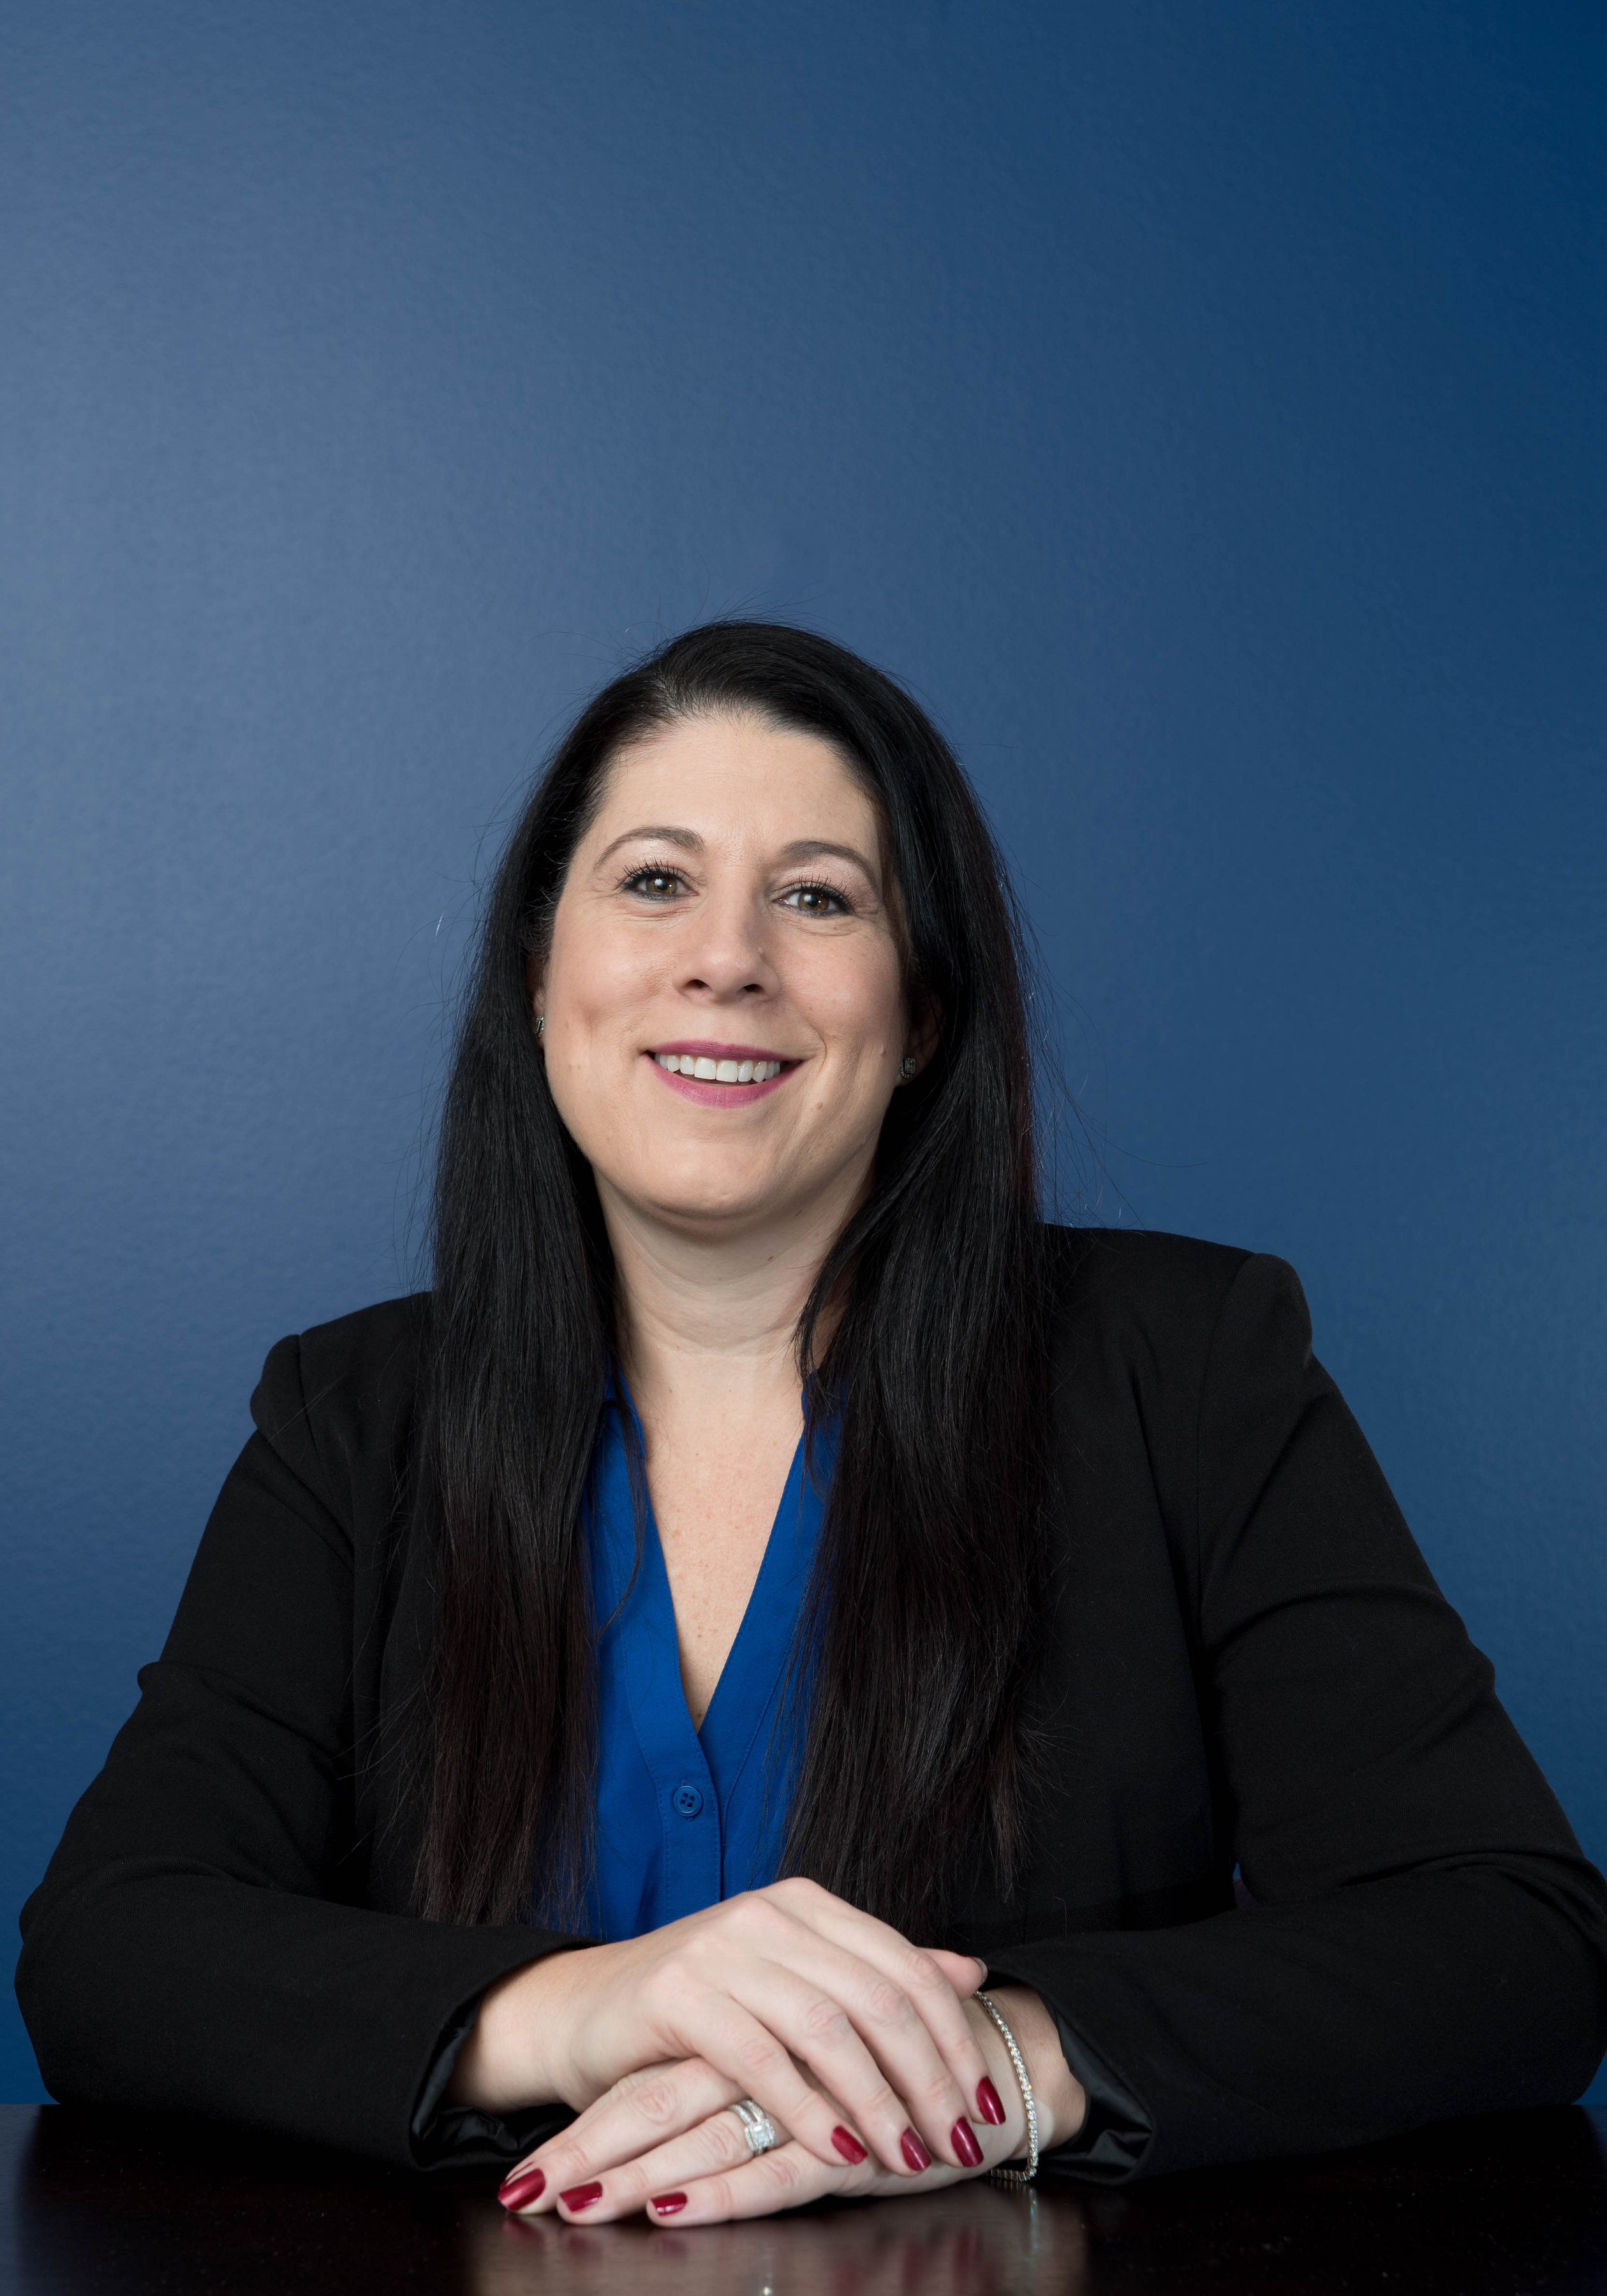 irvine ca cpa firm lara shapiro page sroka co cpas i am excited to be at sroka co cpas as the office administrator i am process oriented detail oriented have strong problem solving and analytical skills